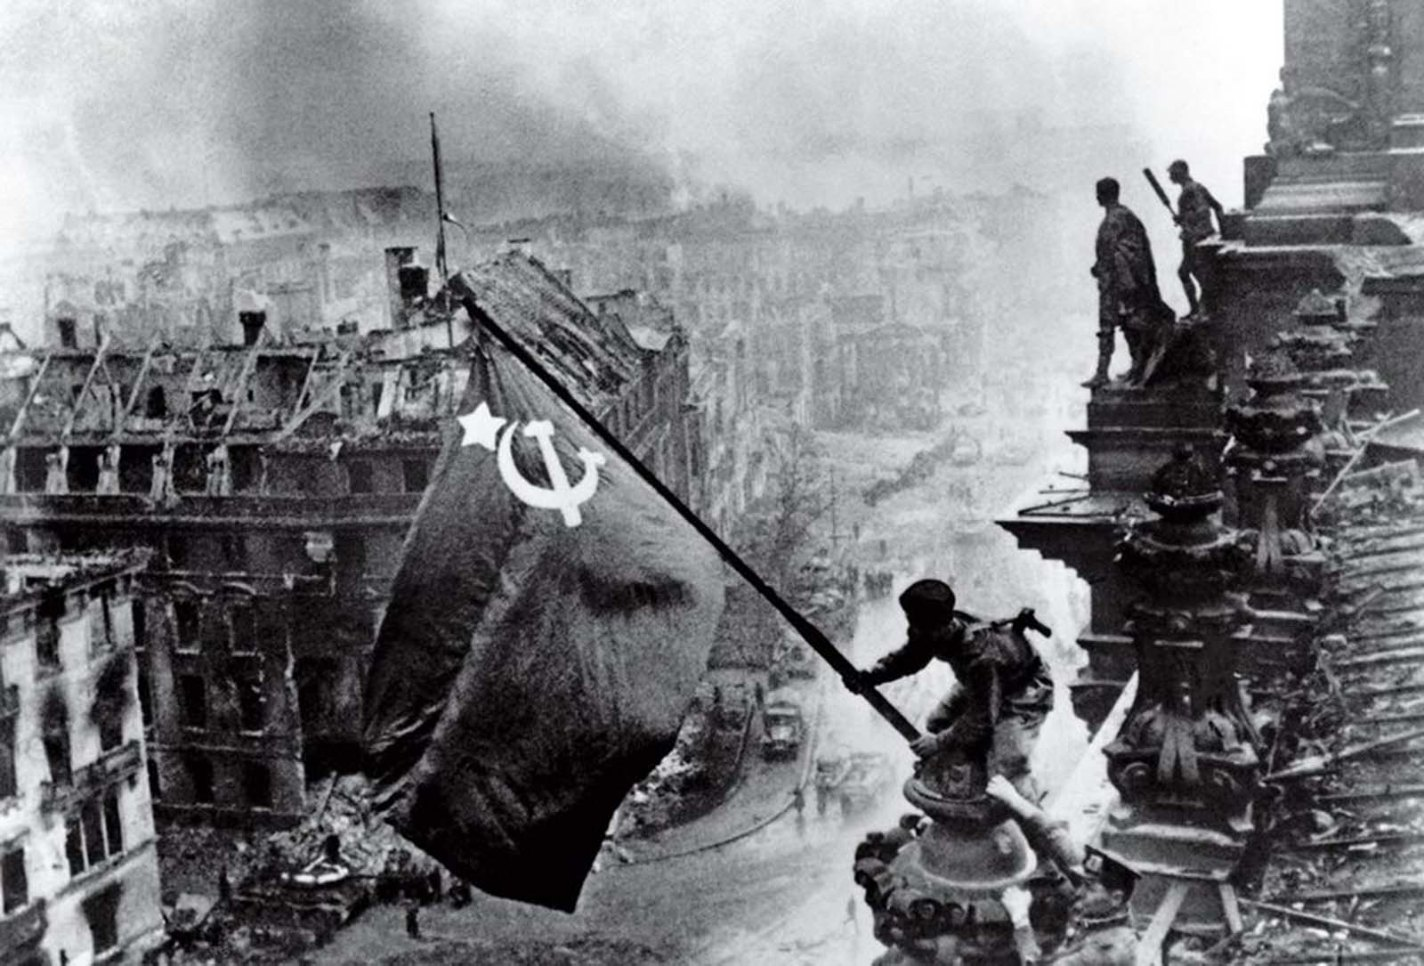 Historical picture: Raising a Flag over the Reichstag, Yevgeny Khaldei, 1945